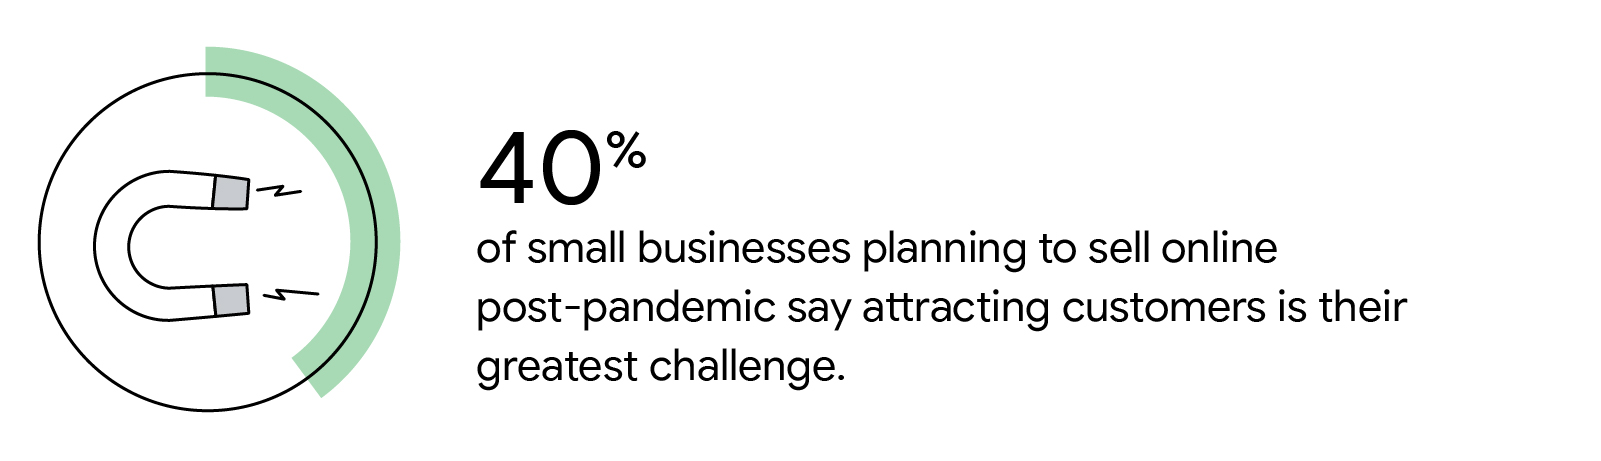 Illustrated icon represents 40% of small businesses planning to sell online post-pandemic say attracting customers is their greatest challenge.